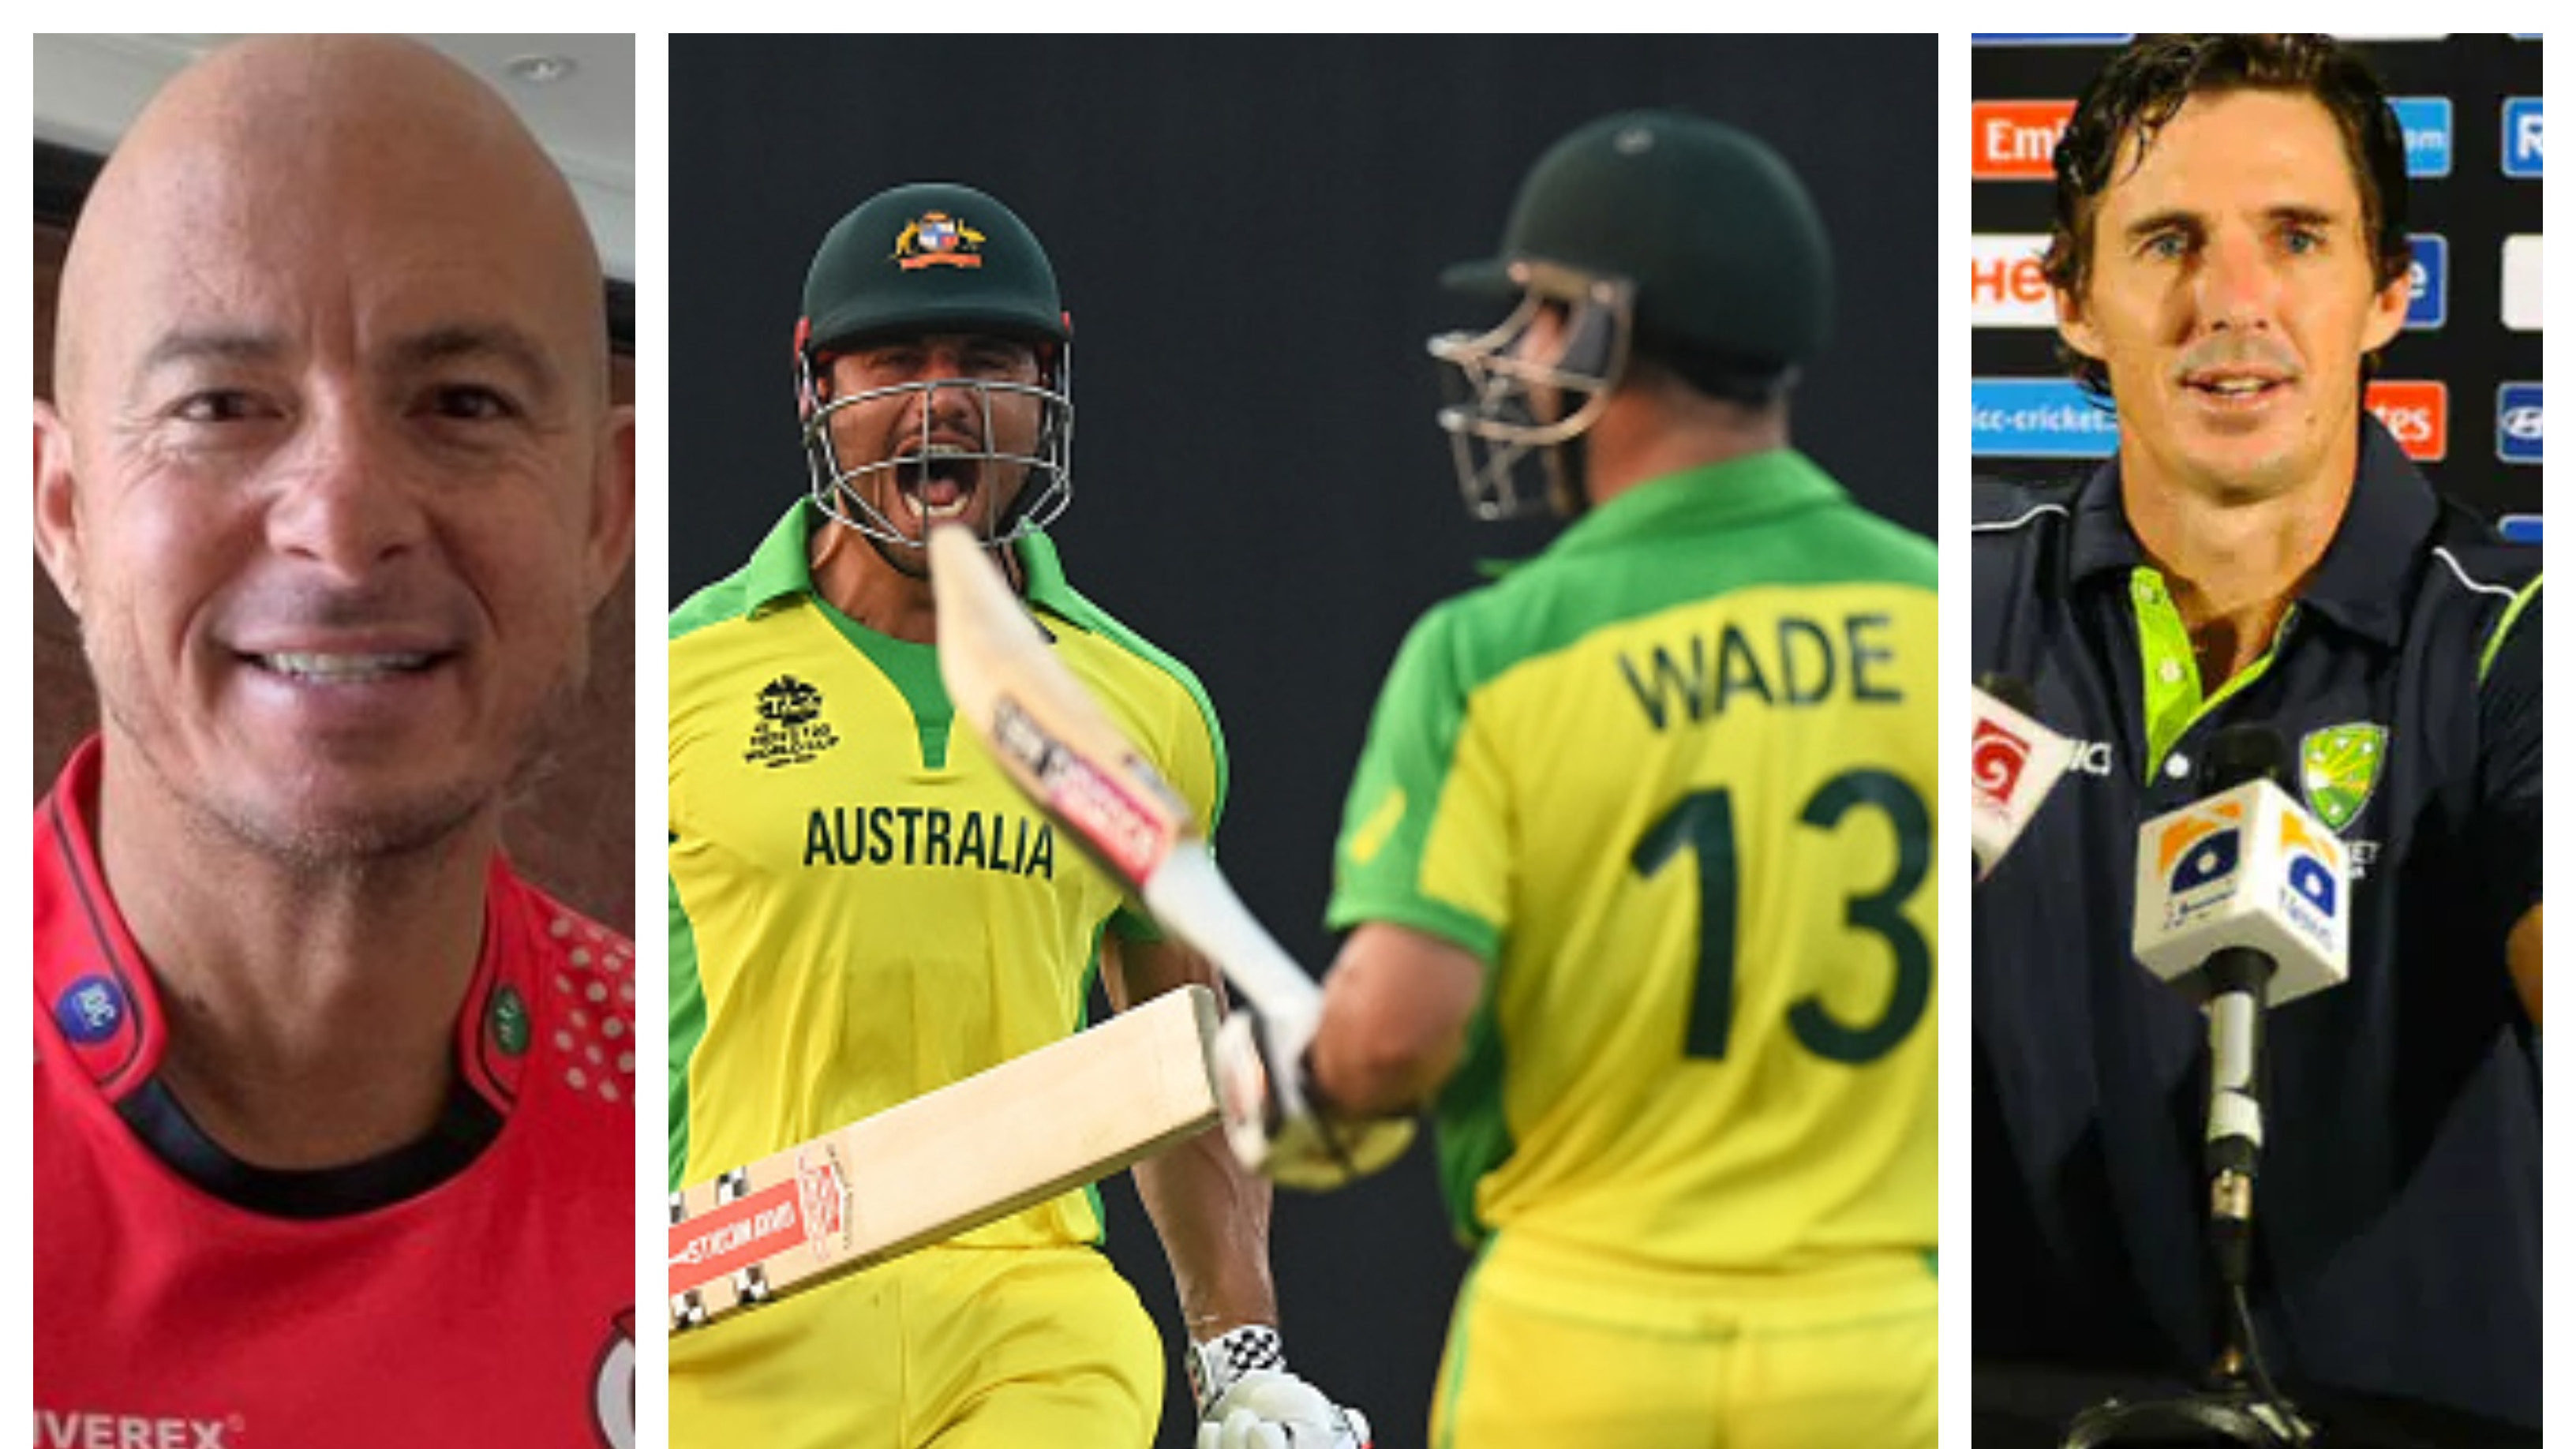 T20 World Cup 2021: Cricket fraternity reacts as Australia defeat South Africa by 5 wickets in a low-scoring thriller